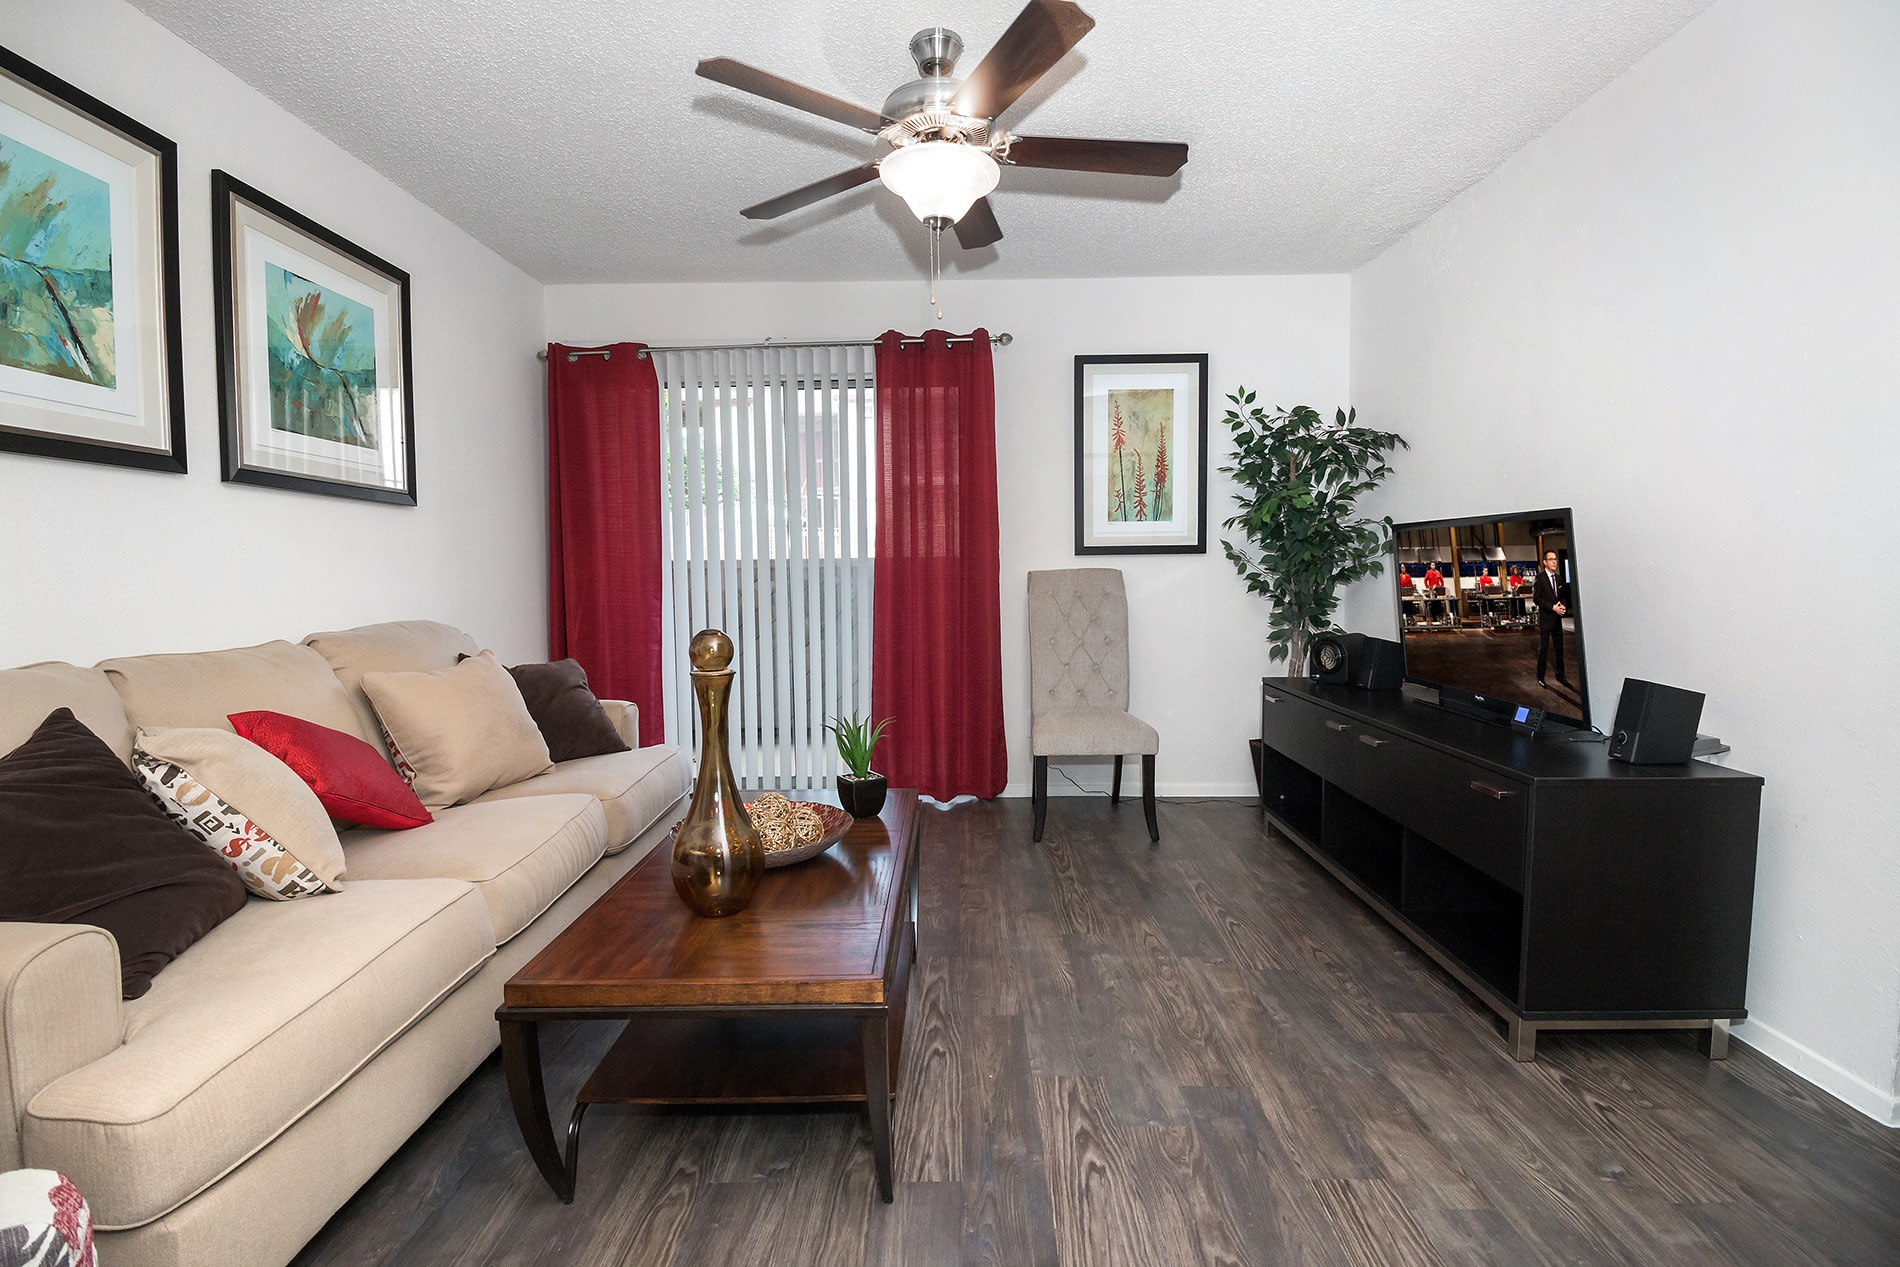 20 Best Apartments For Rent In Waco TX with pictures